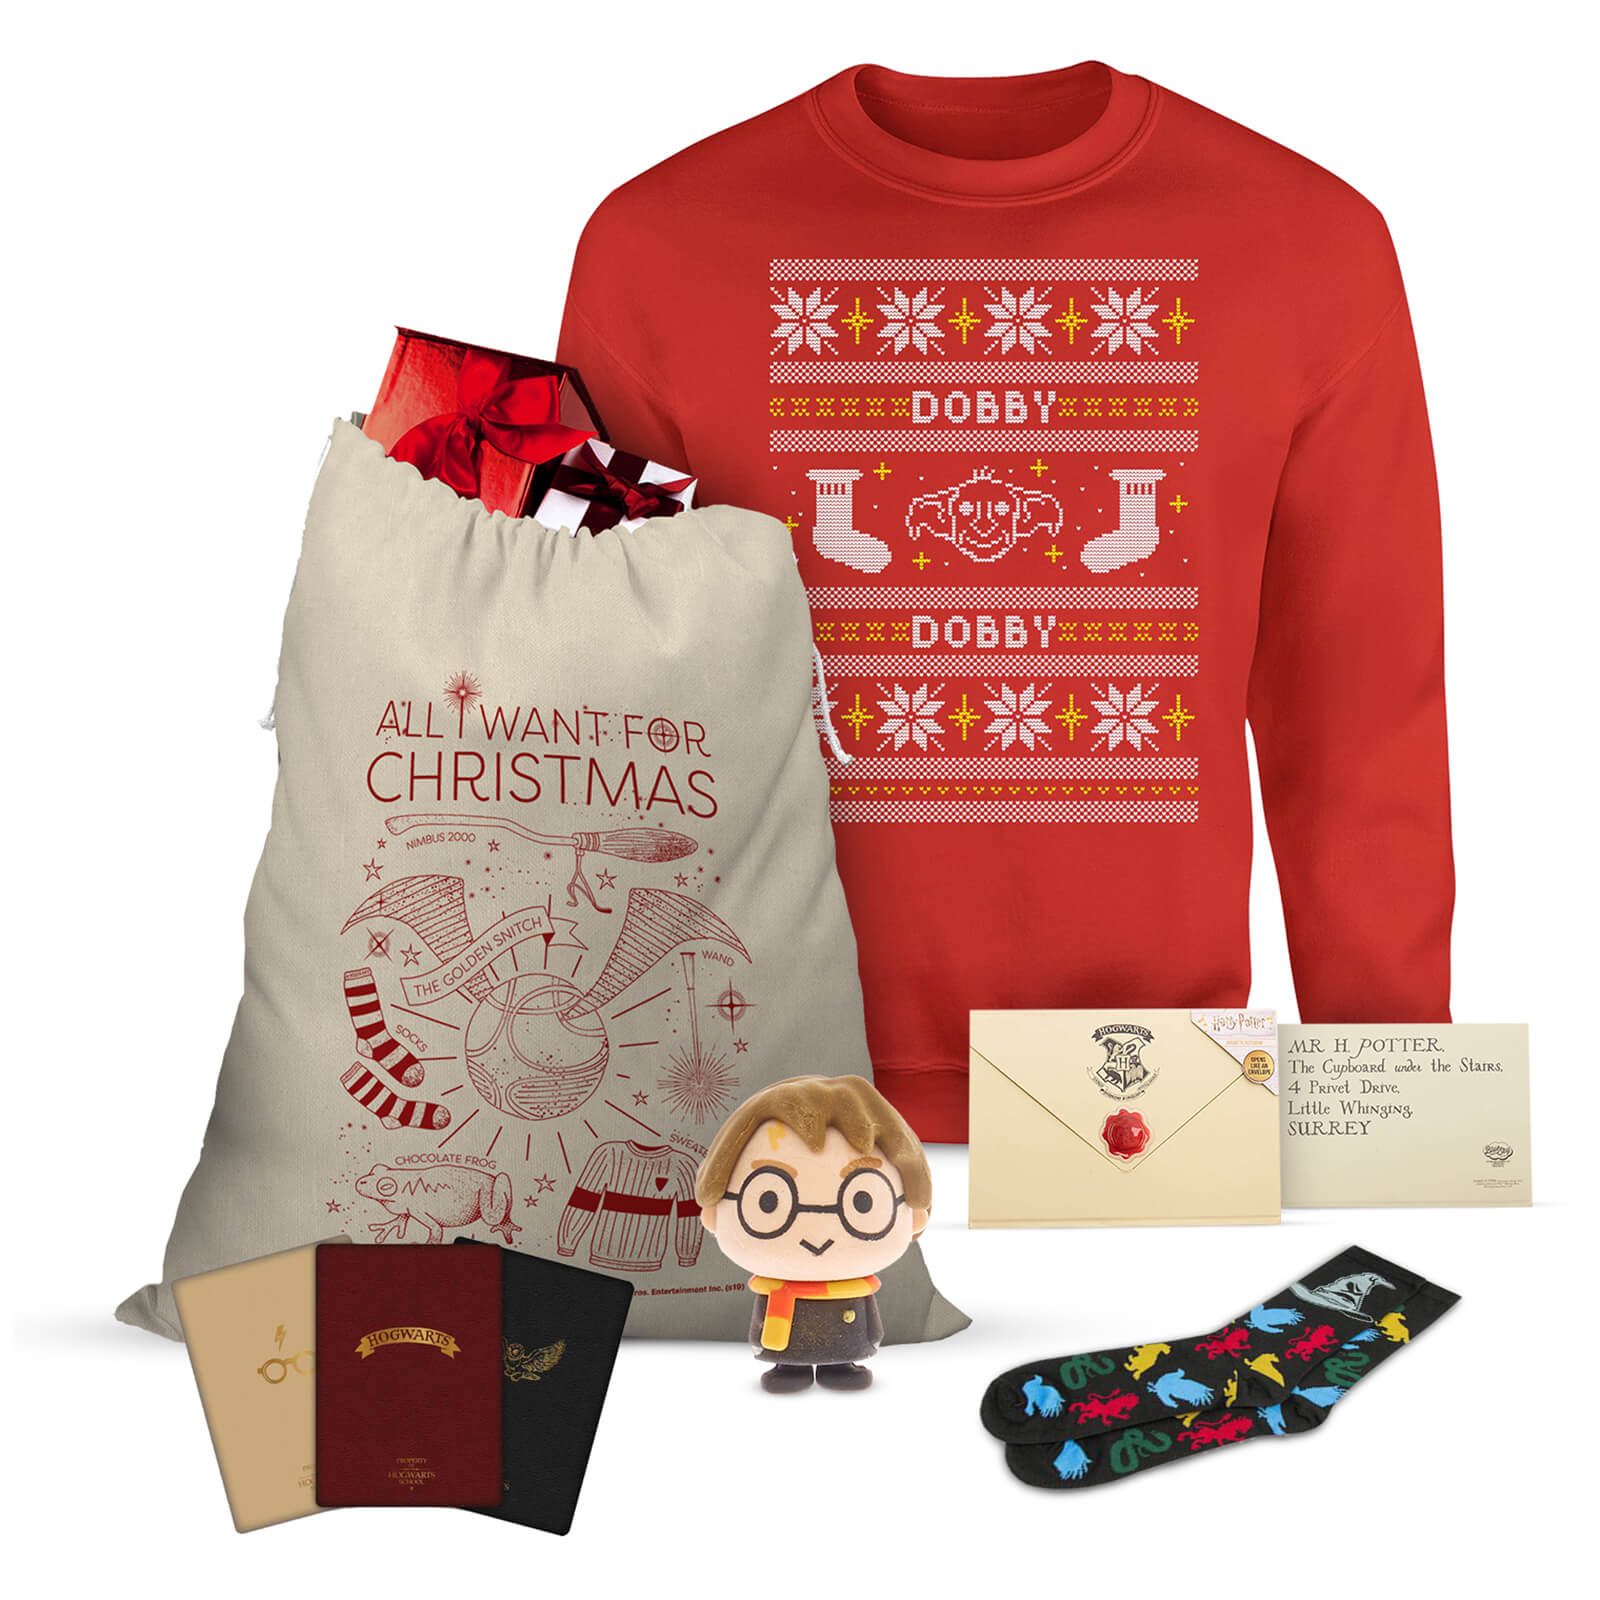 Harry Potter Christmas Gifts.Harry Potter Officially Licensed Mega Christmas Gift Set